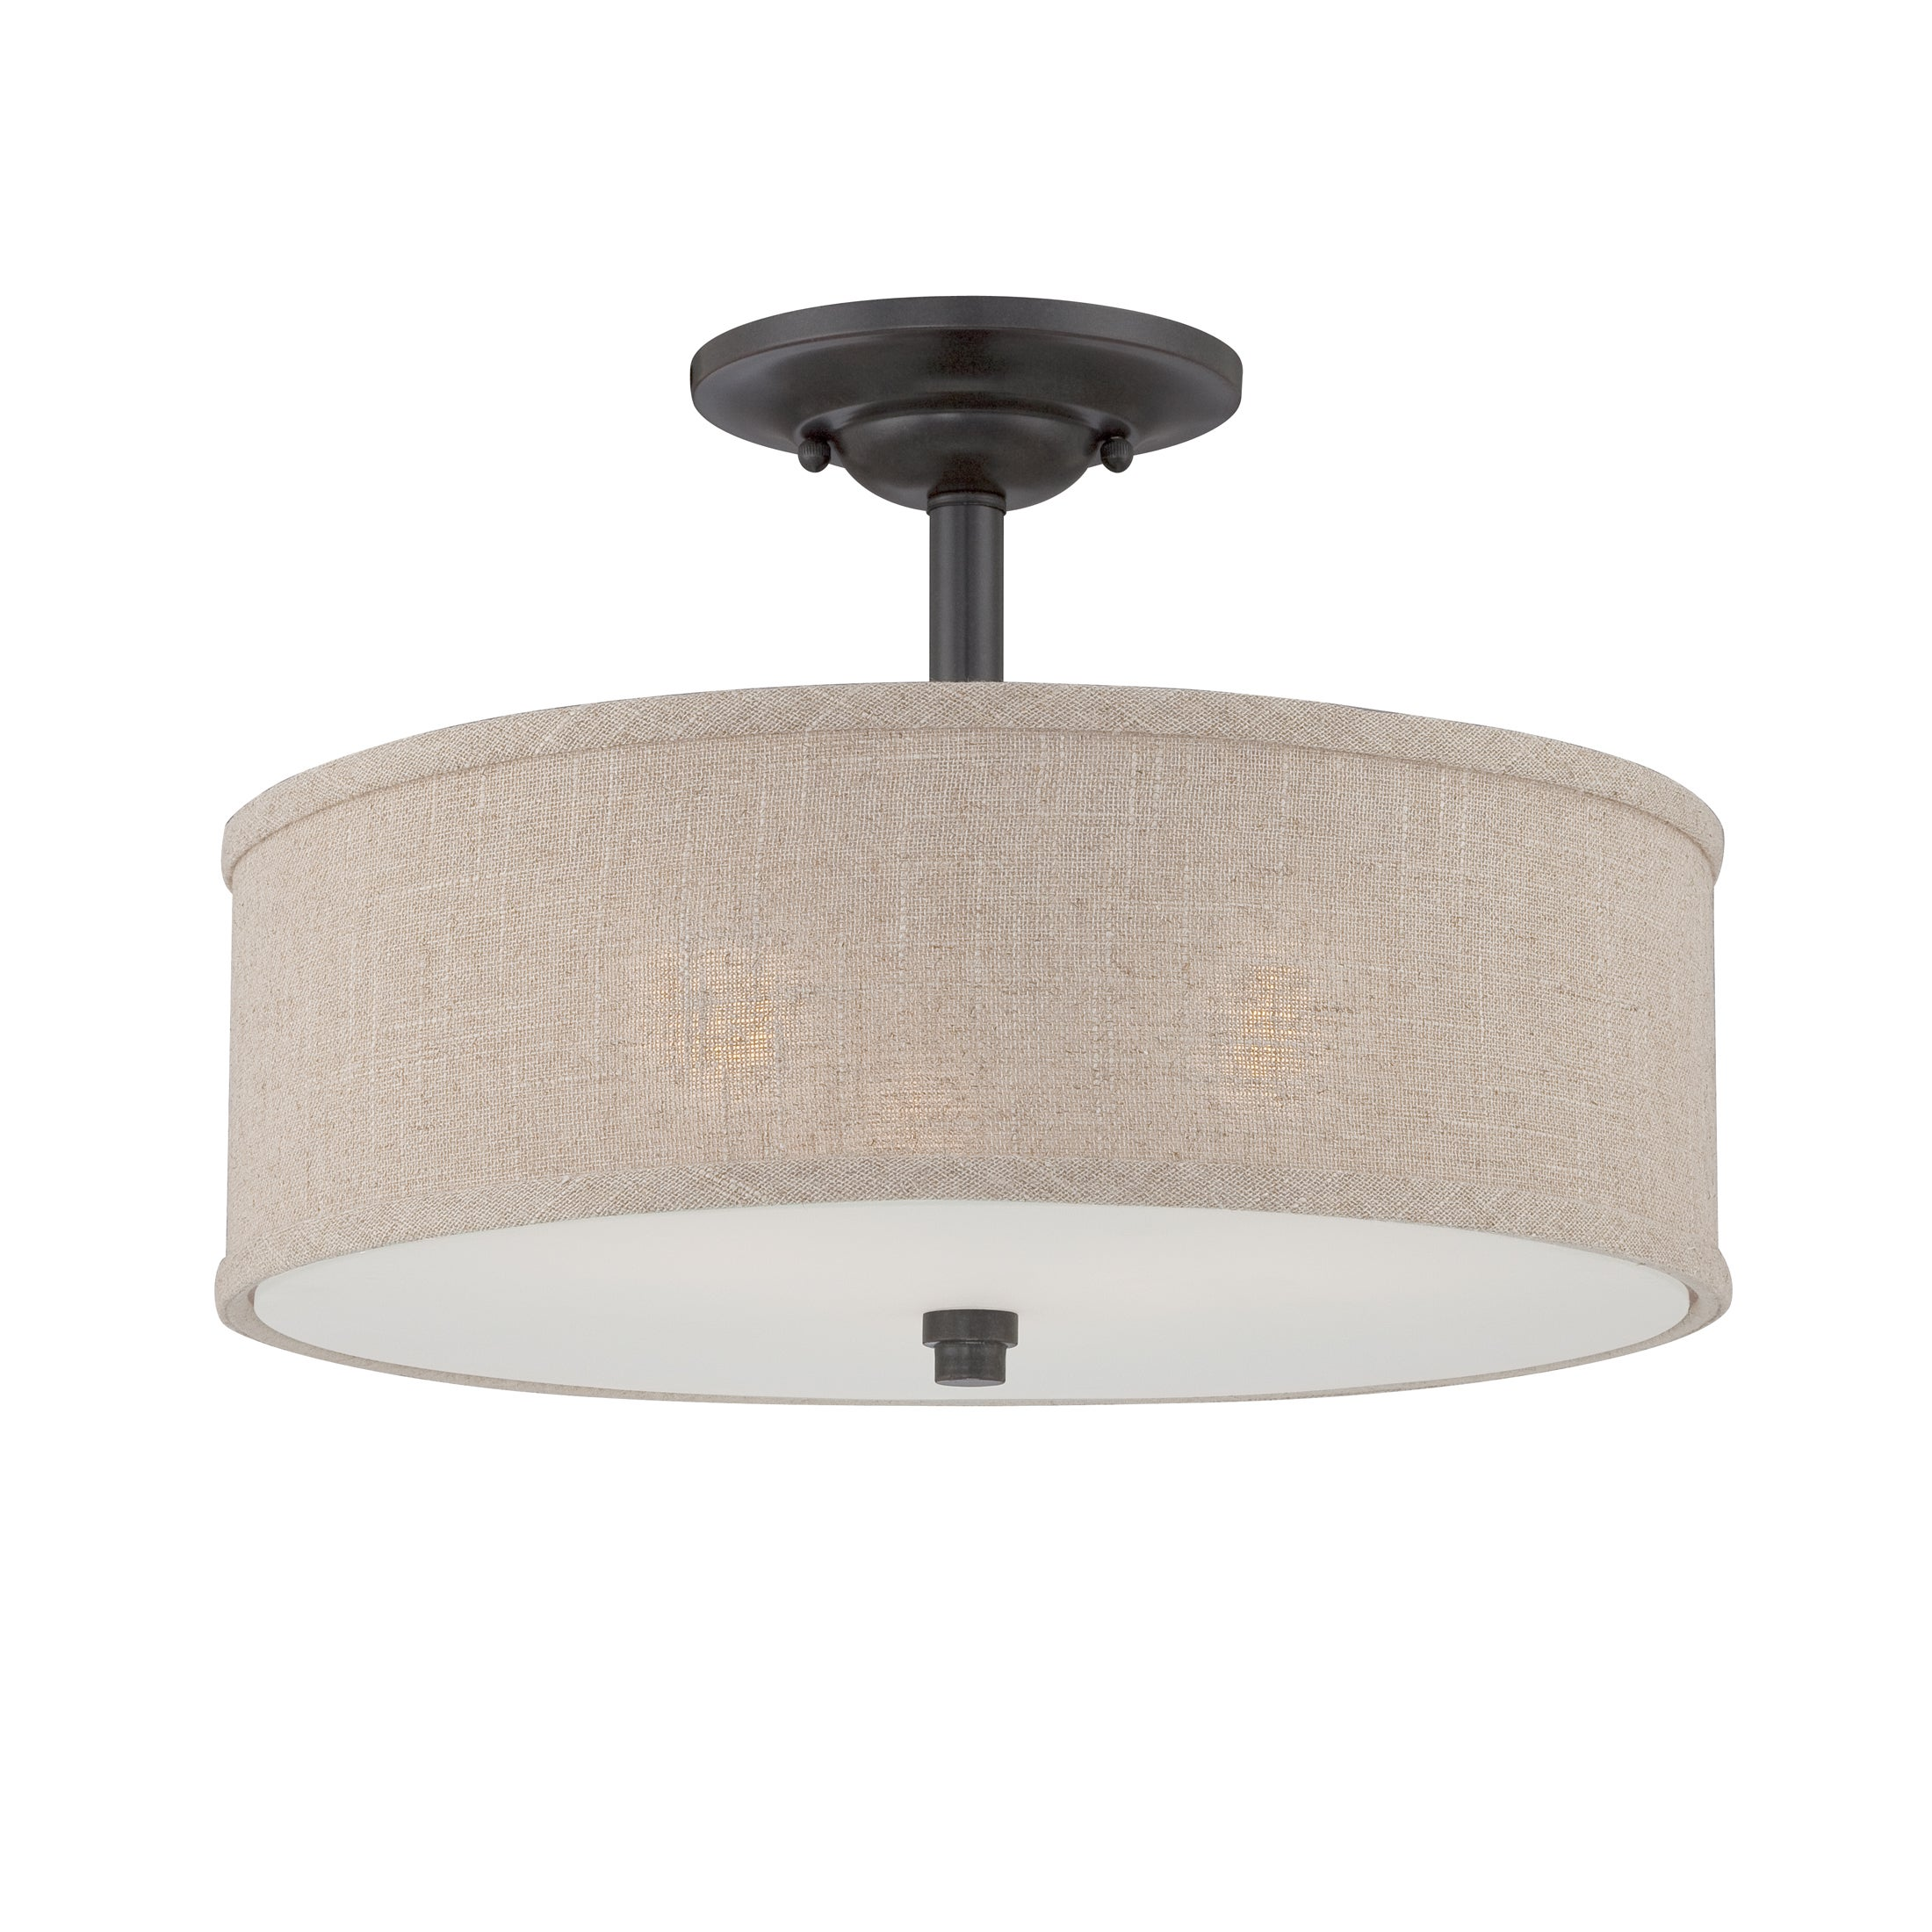 Sale alerts for  Quoizel 'Cloverdale' Semi-flush Mount - Covvet